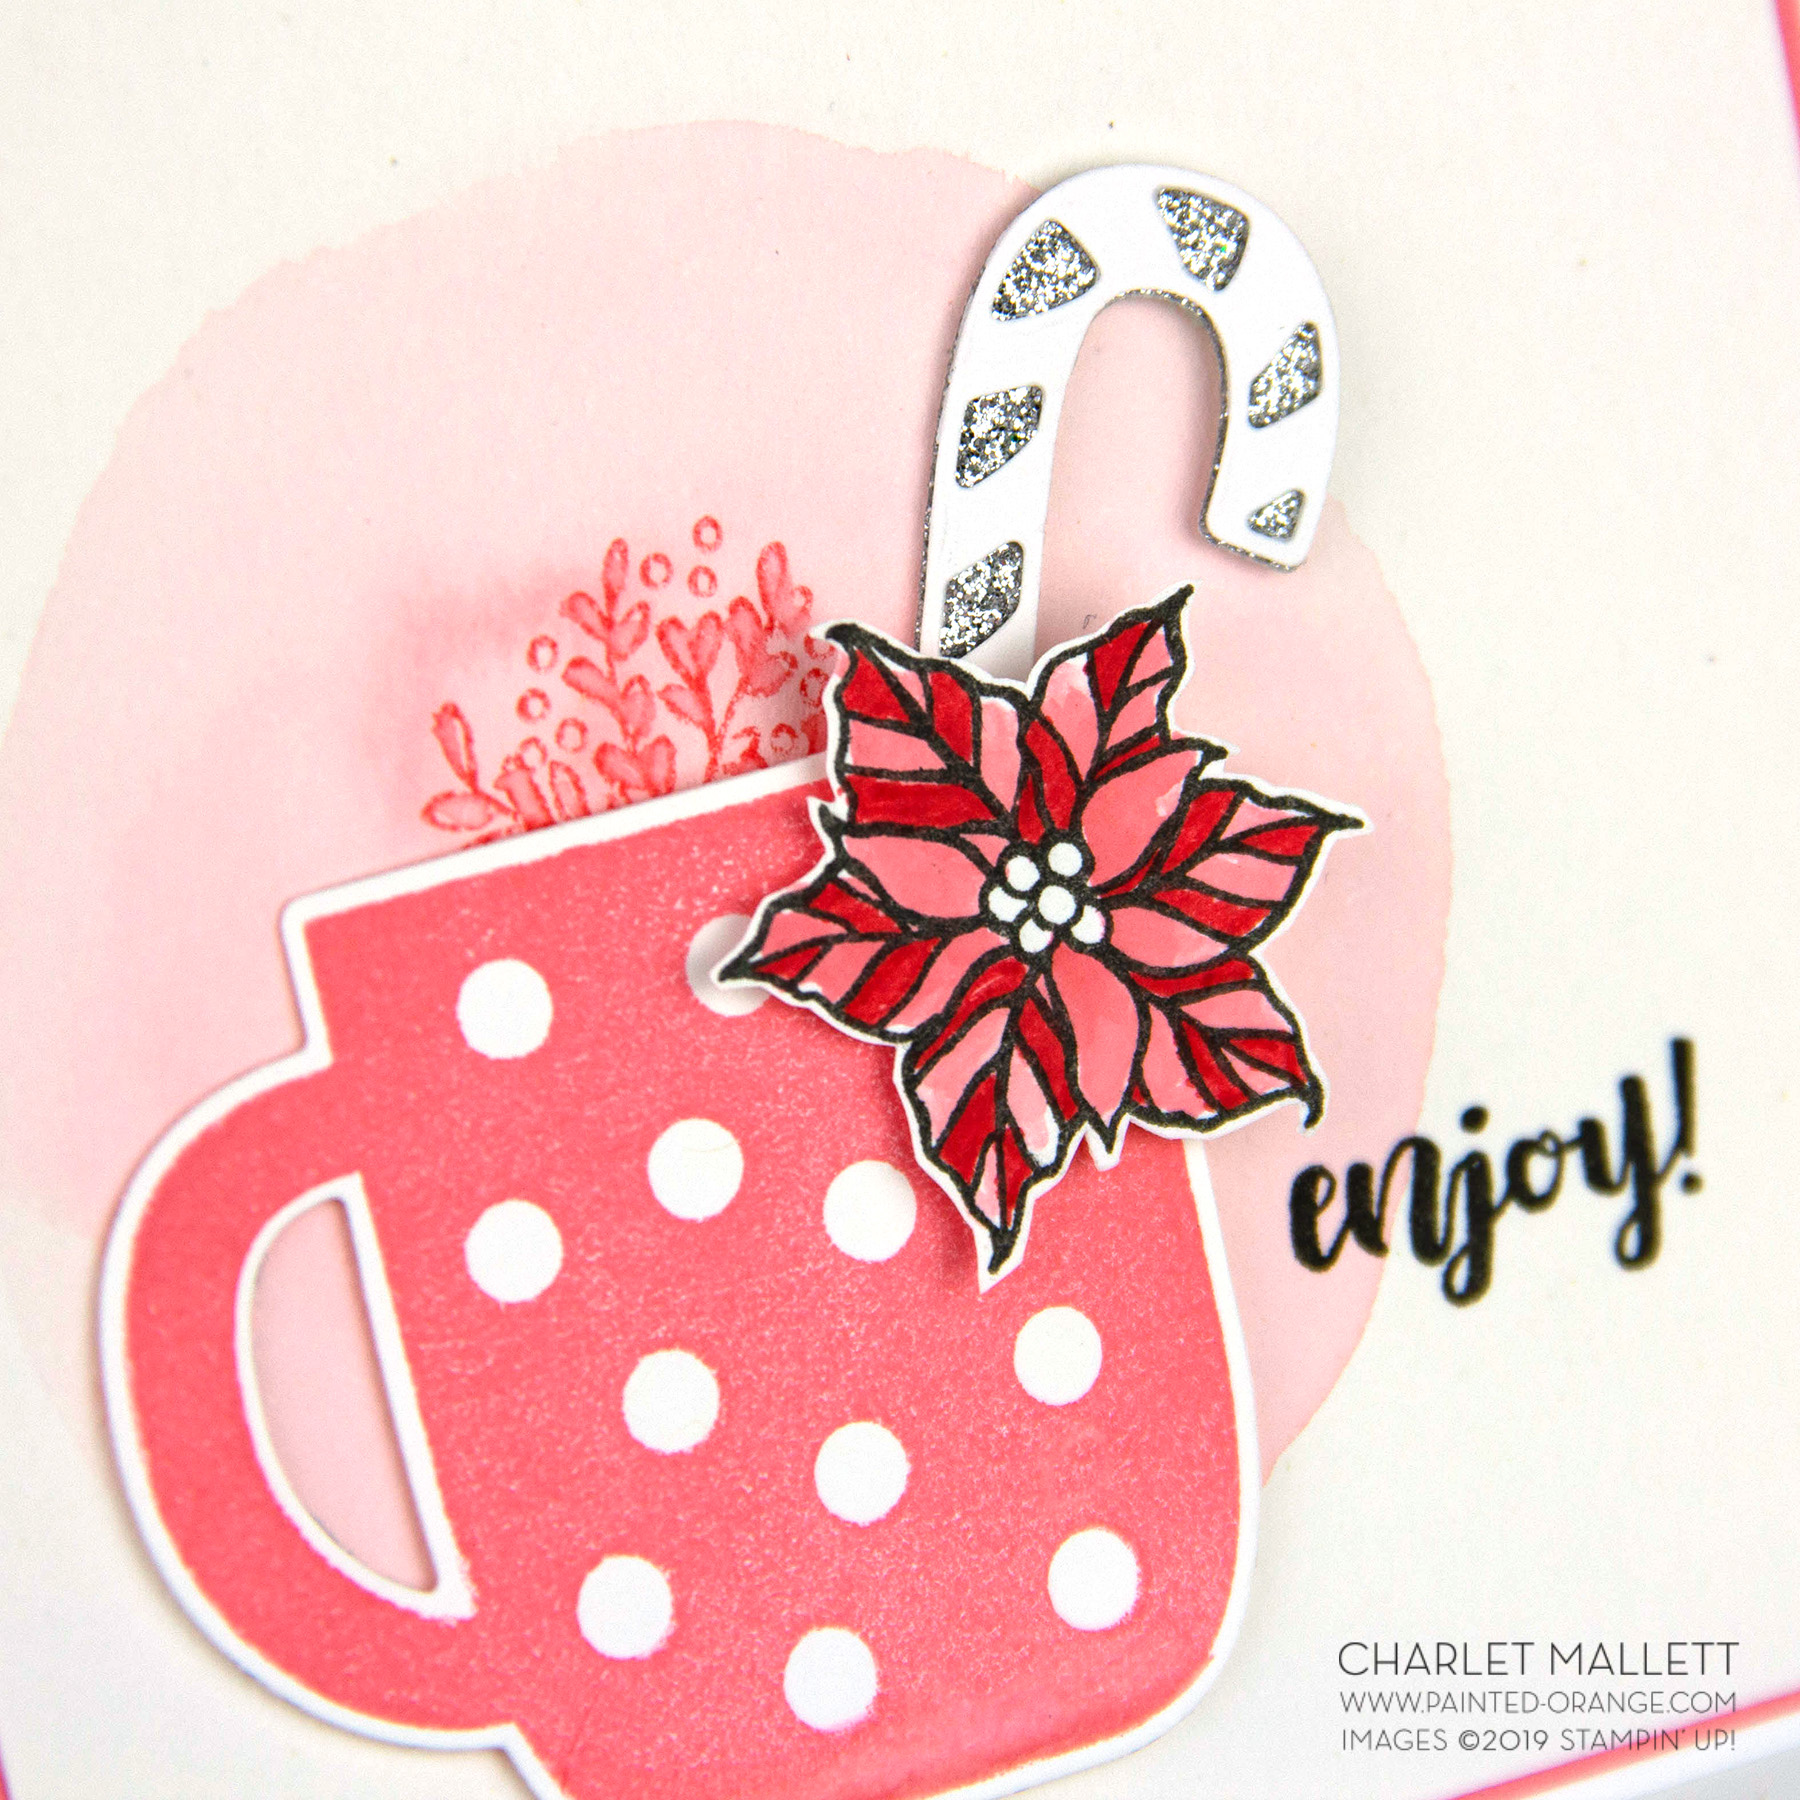 Cup of Christmas card - Charlet Mallett, Stampin' Up!